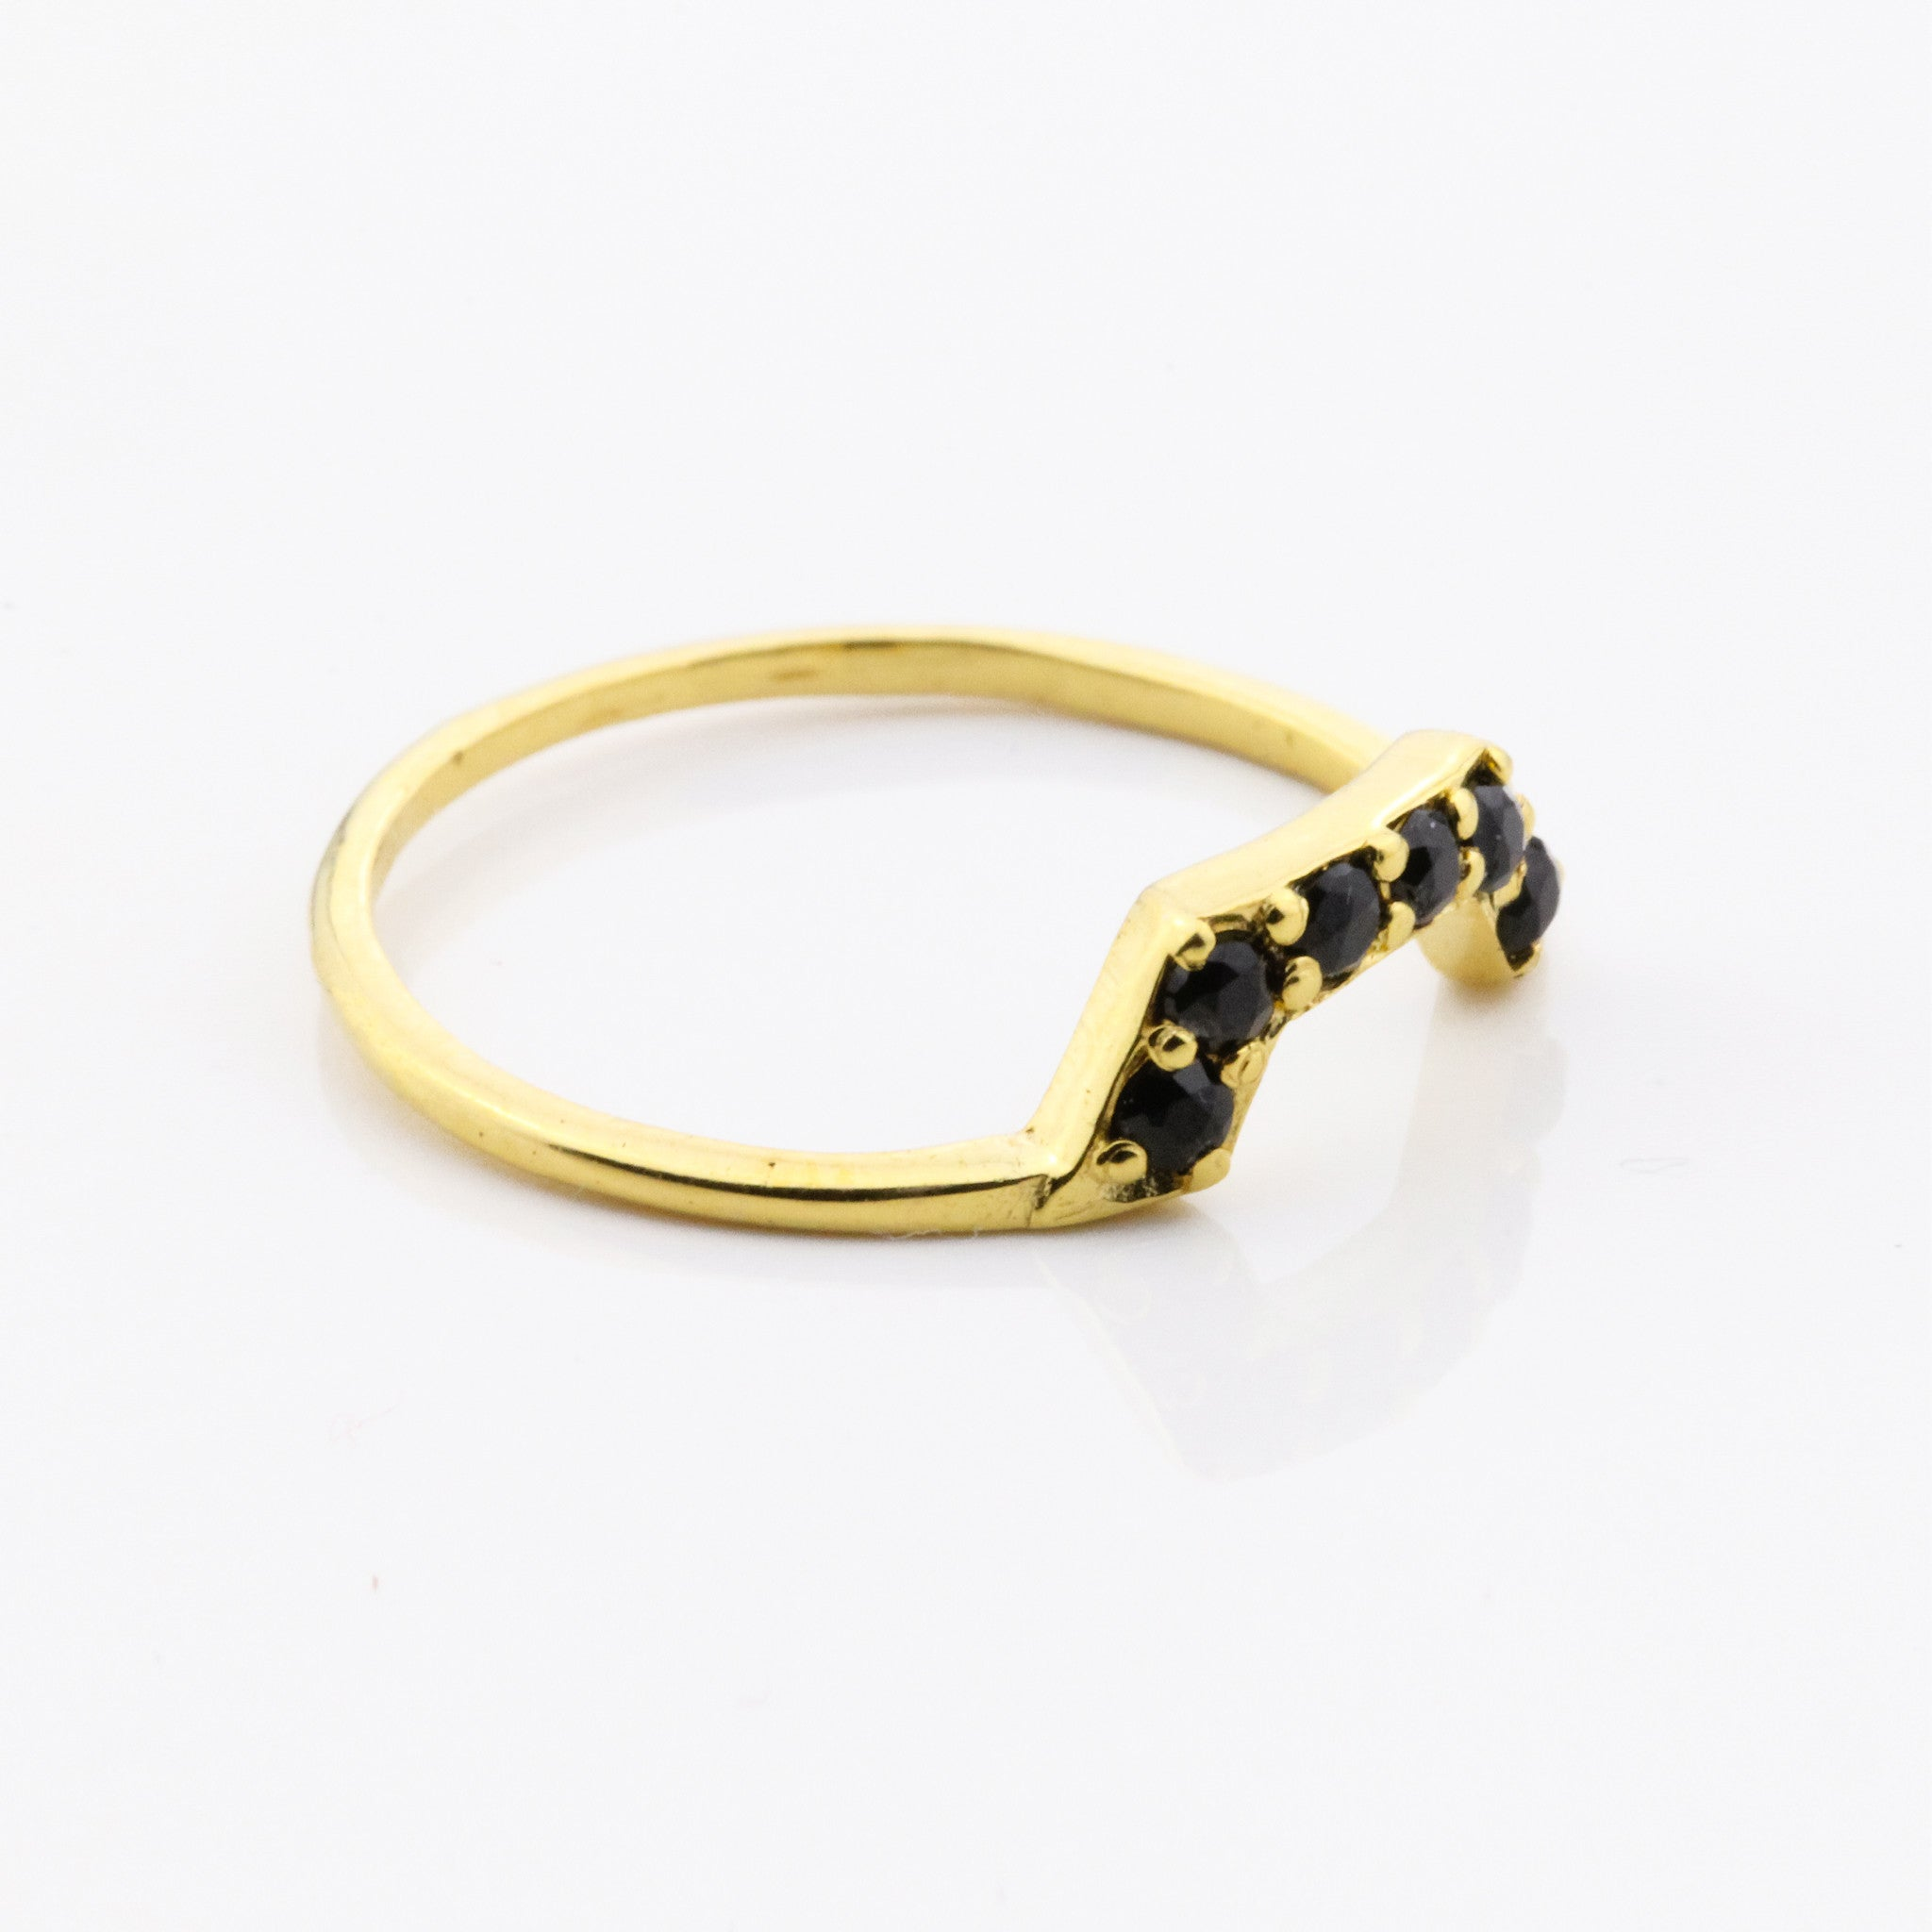 6 Stone Half Hexi Ring - Black Quartz and Yellow Gold